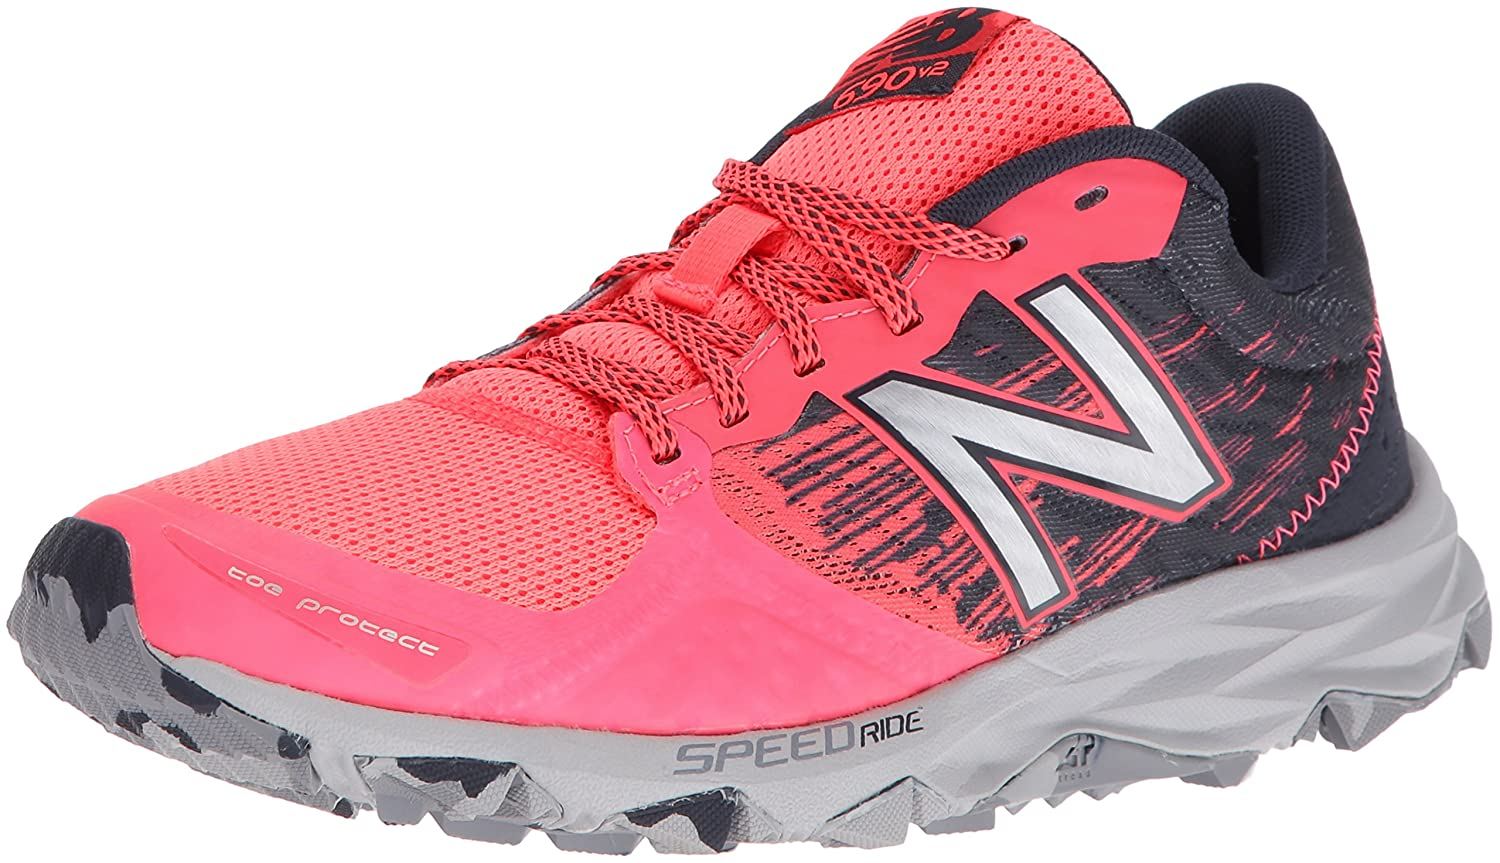 New Balance Women's 690v2 Trail Running Shoes B01CQVQM8Y 7.5 B(M) US|Pink